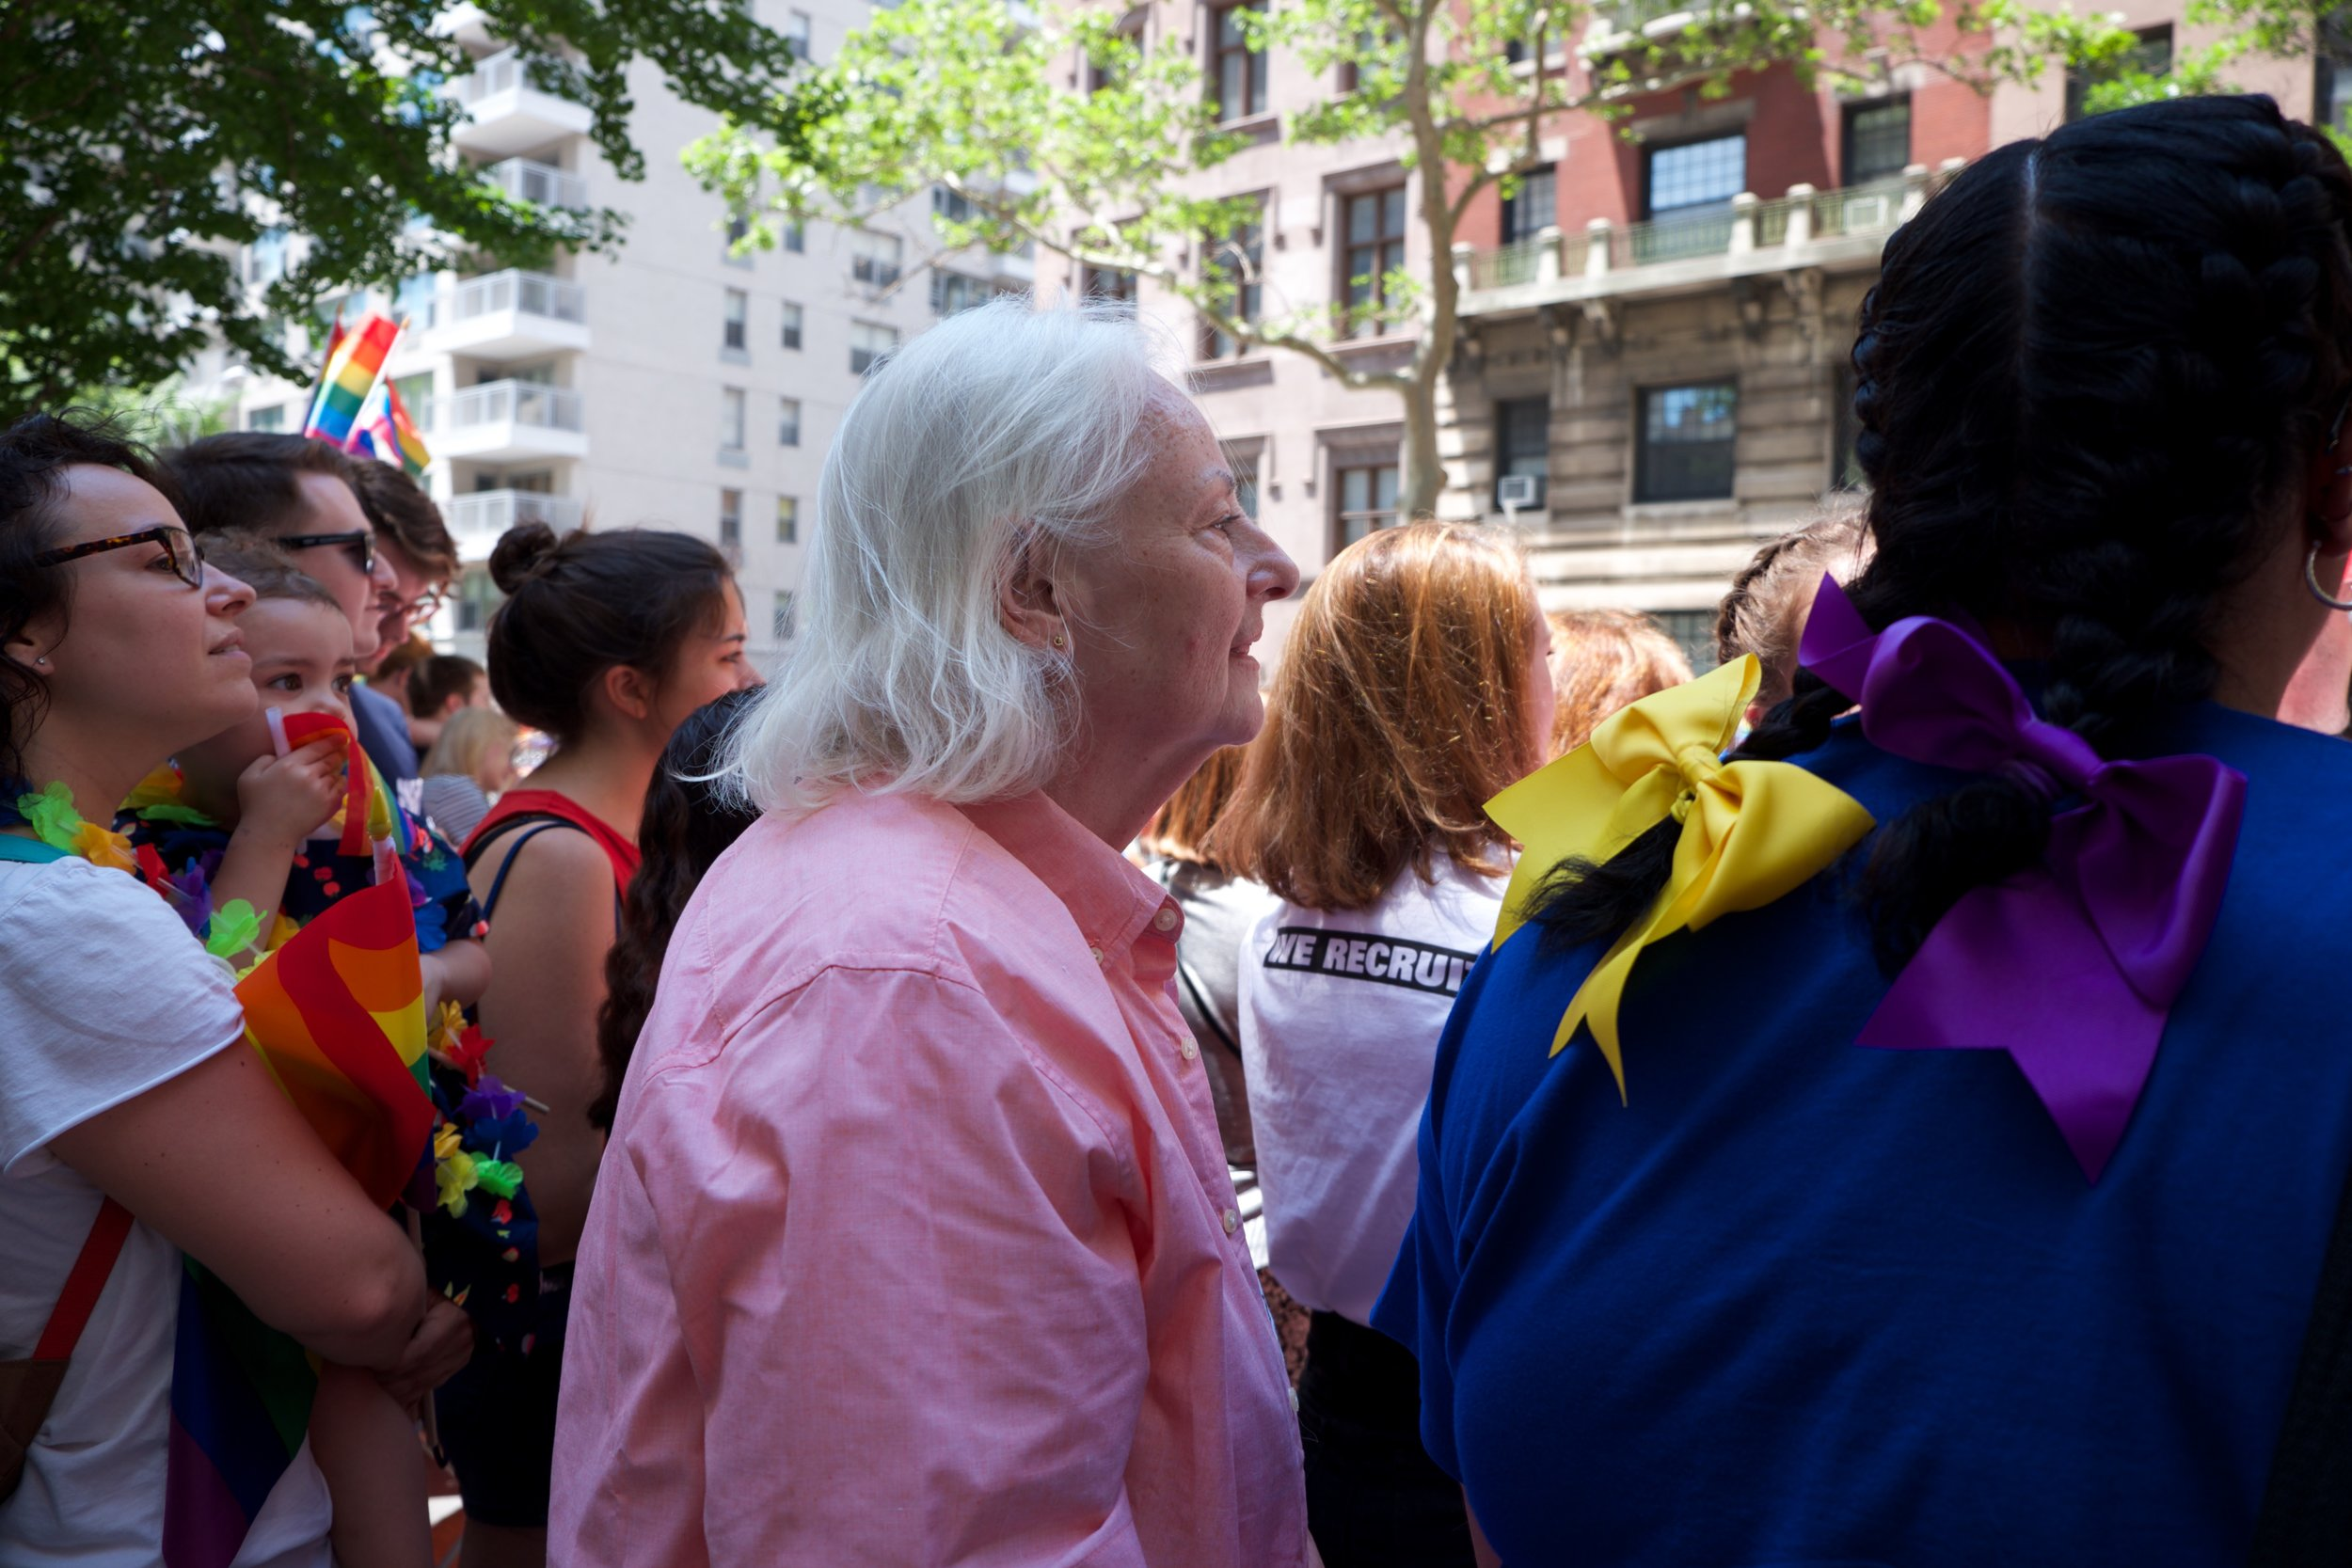 Watching the Gay Pride parade. Fifth Avenue, New York City (June 25, 2017).